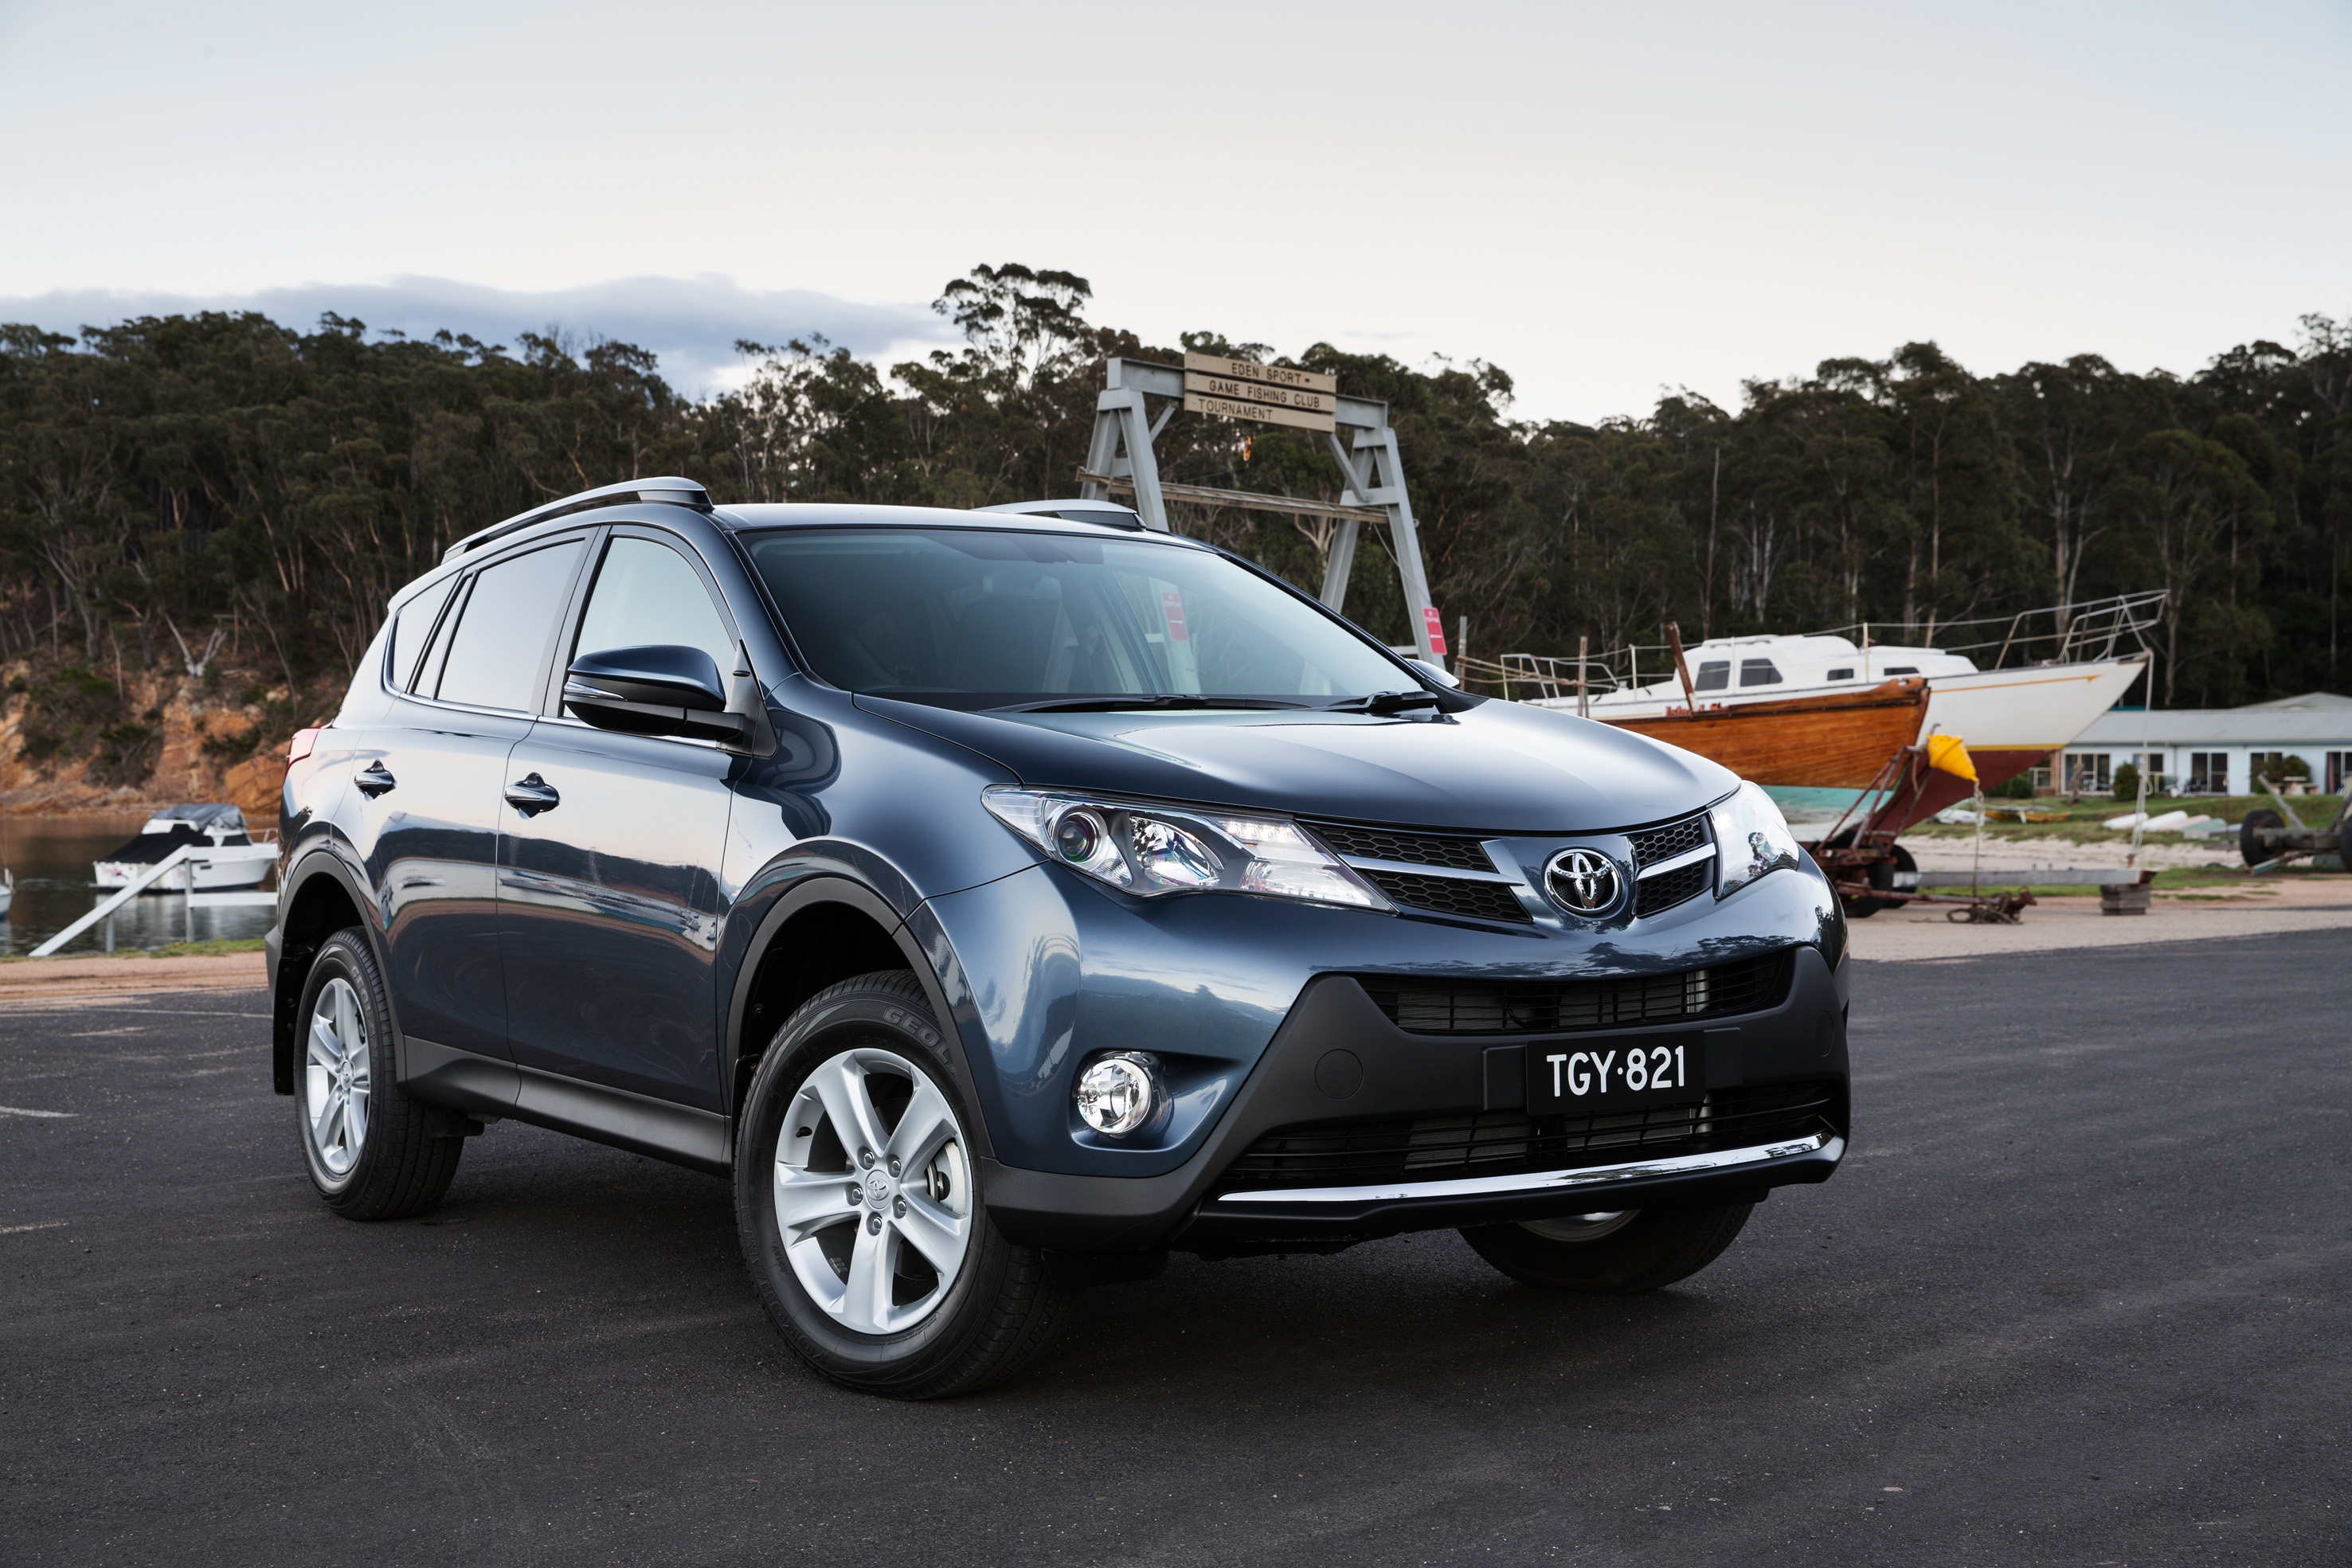 toyota rav4 review gxl 4wd caradvice. Black Bedroom Furniture Sets. Home Design Ideas